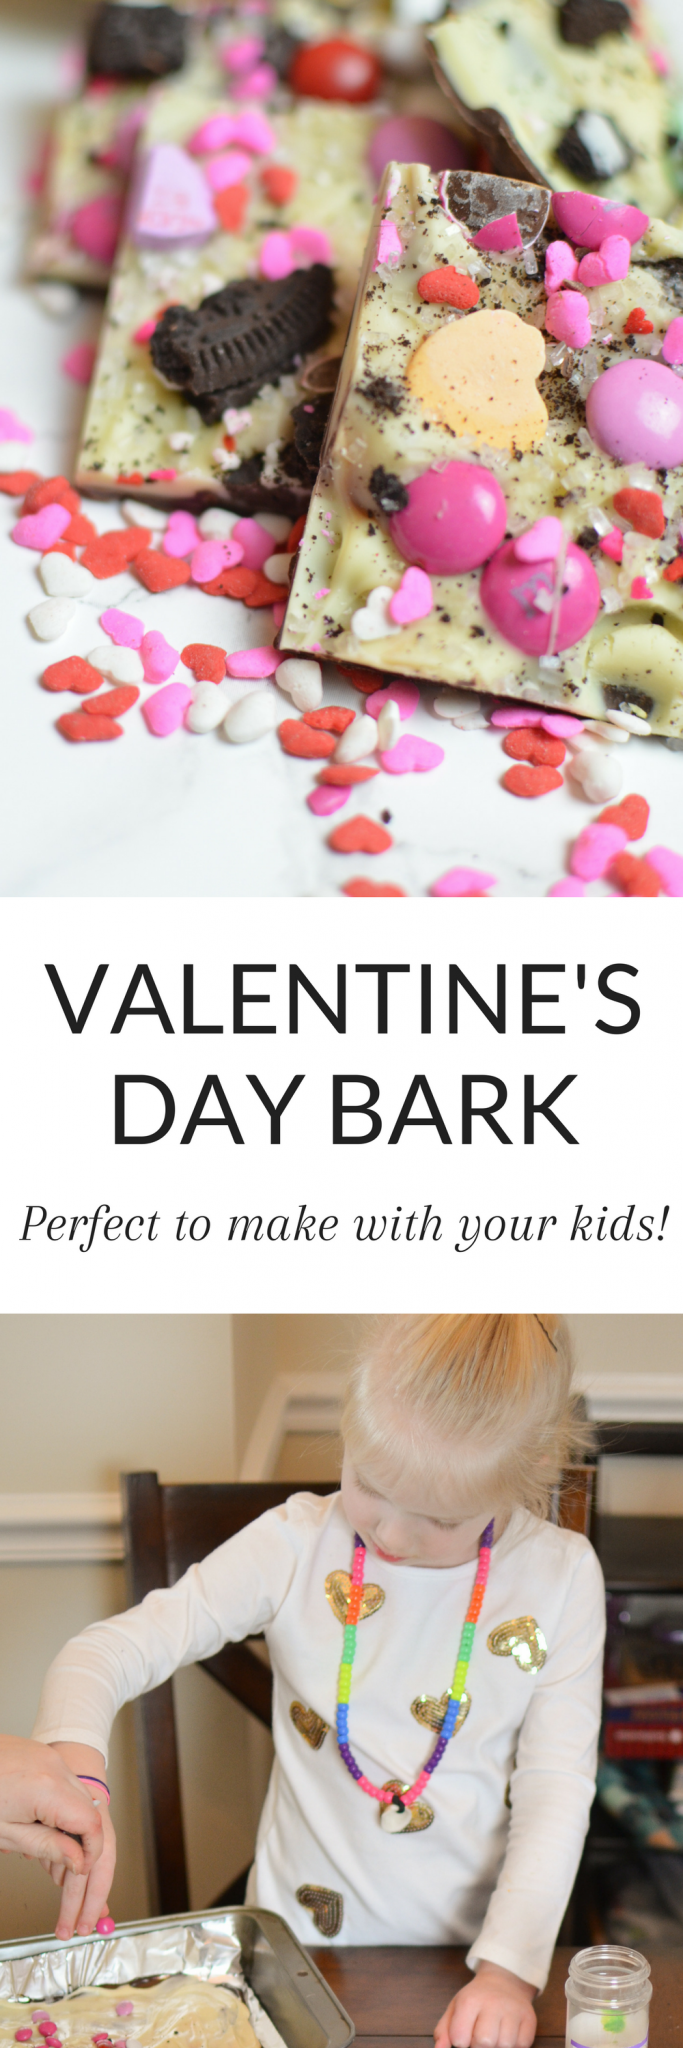 This Valentine's Day Bark is festive, fun, and perfect to make with your kids! So easy to make! #ValentinesDay #Bark #Candy #Valentine